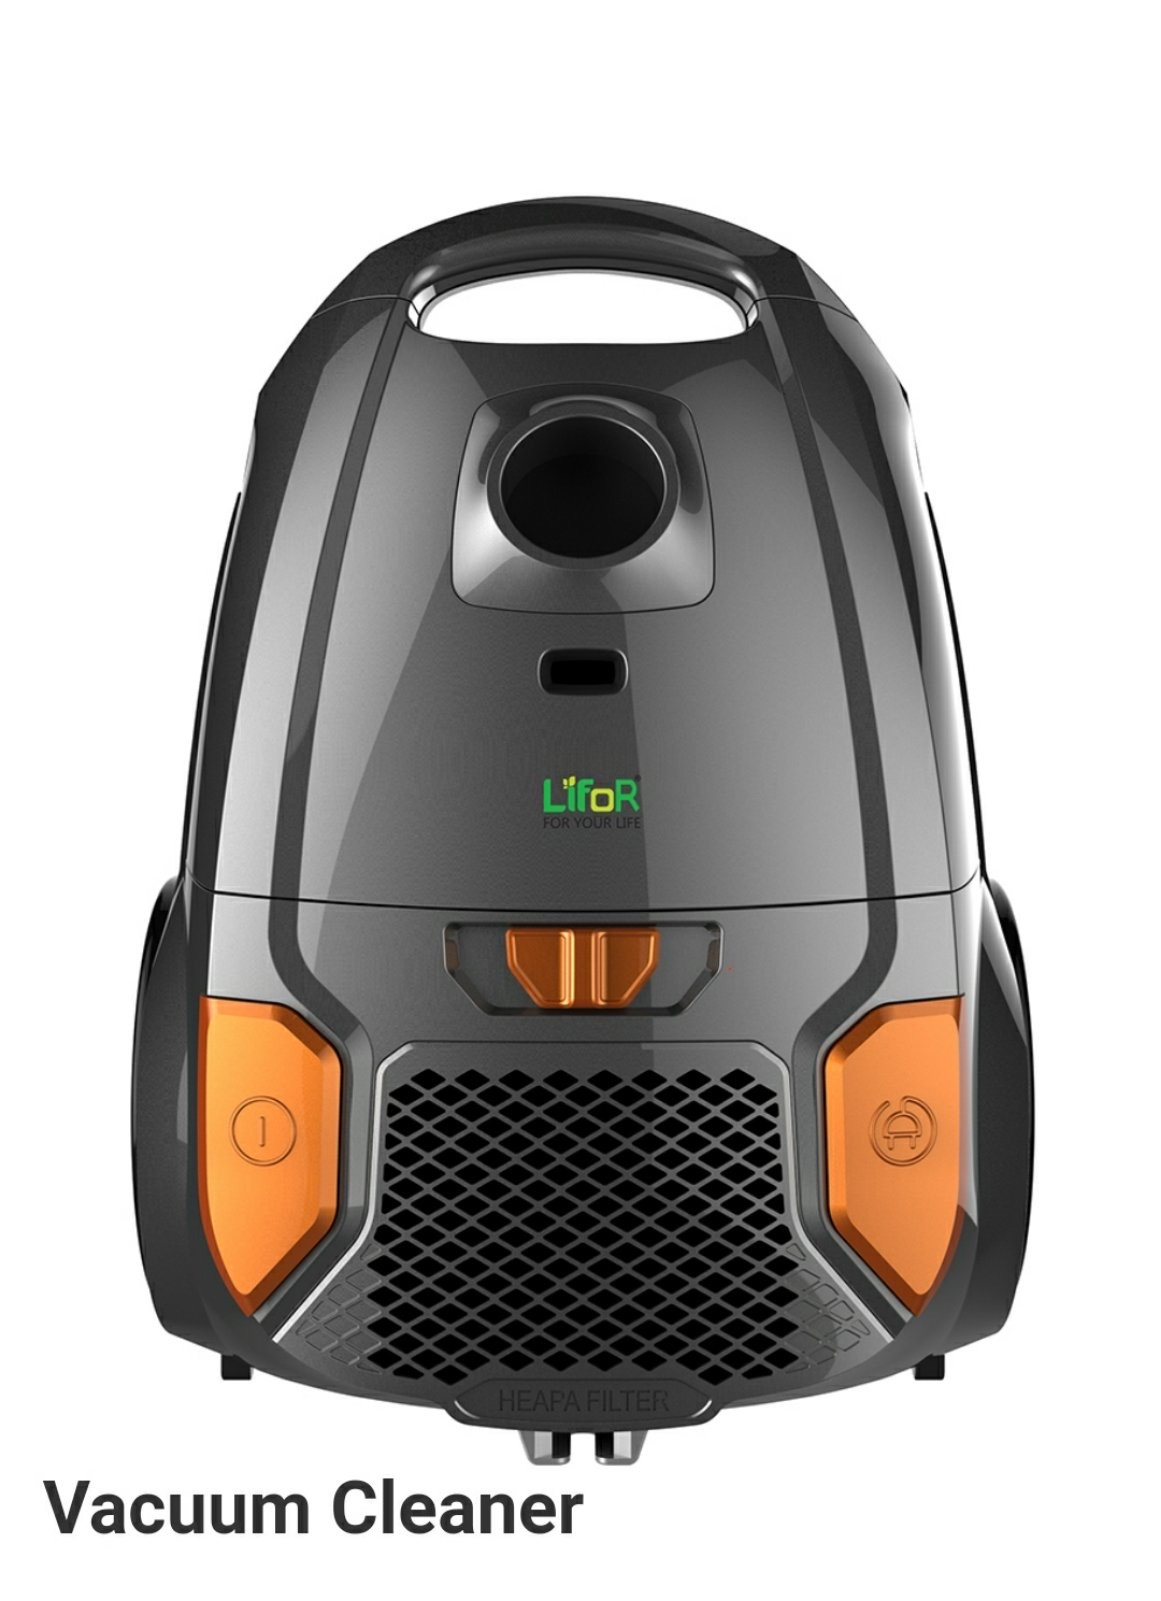 Lifor Vacuum Cleaner  With Bag